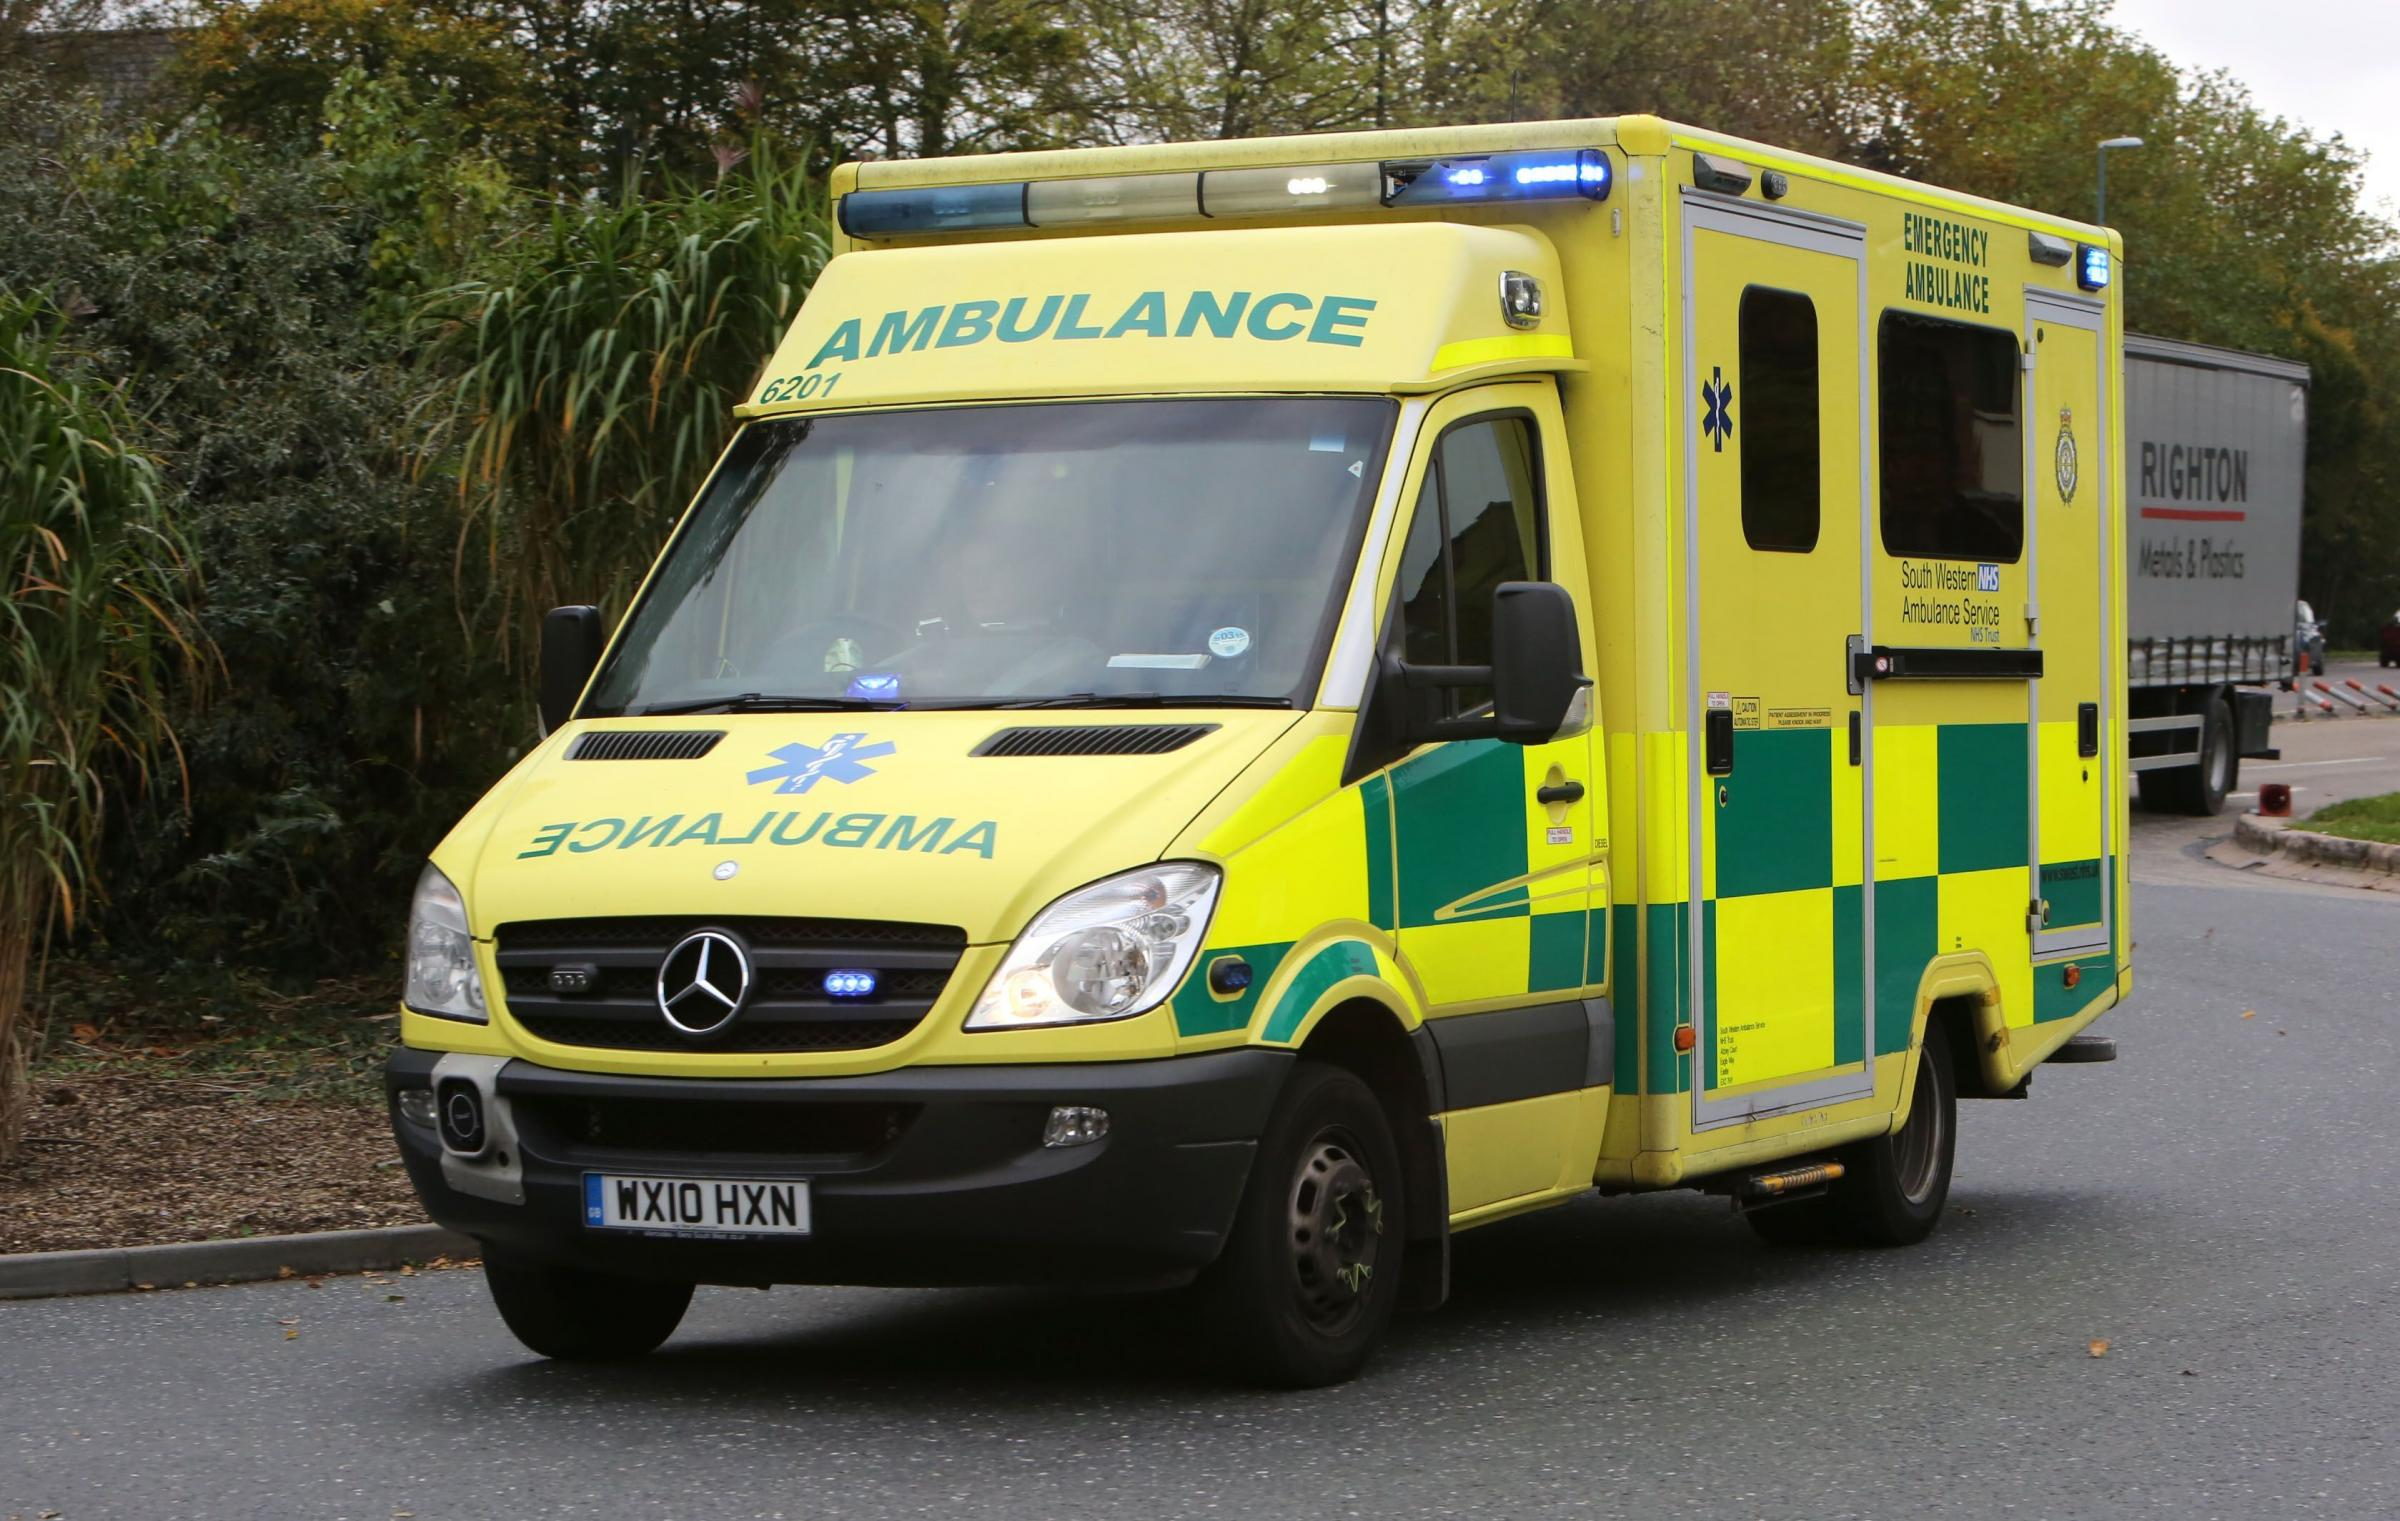 Picture by Richard Crease  - 27/10/14  - RC271014bAmbulance1 - stock photo  -  South West Ambulance with blue lights on.